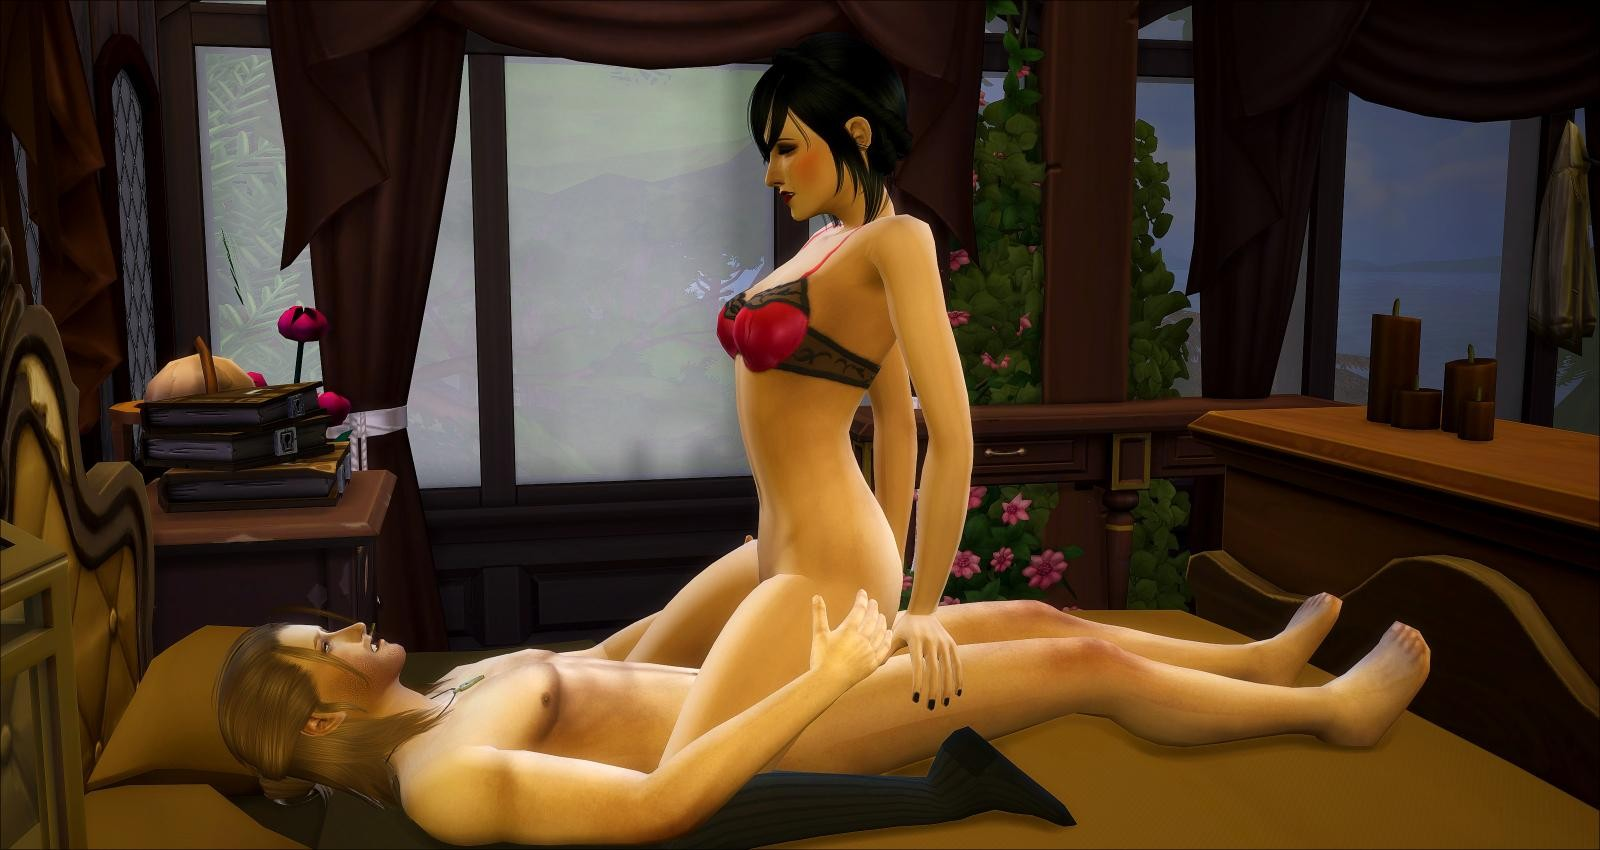 The sims cartoon porn smut pic